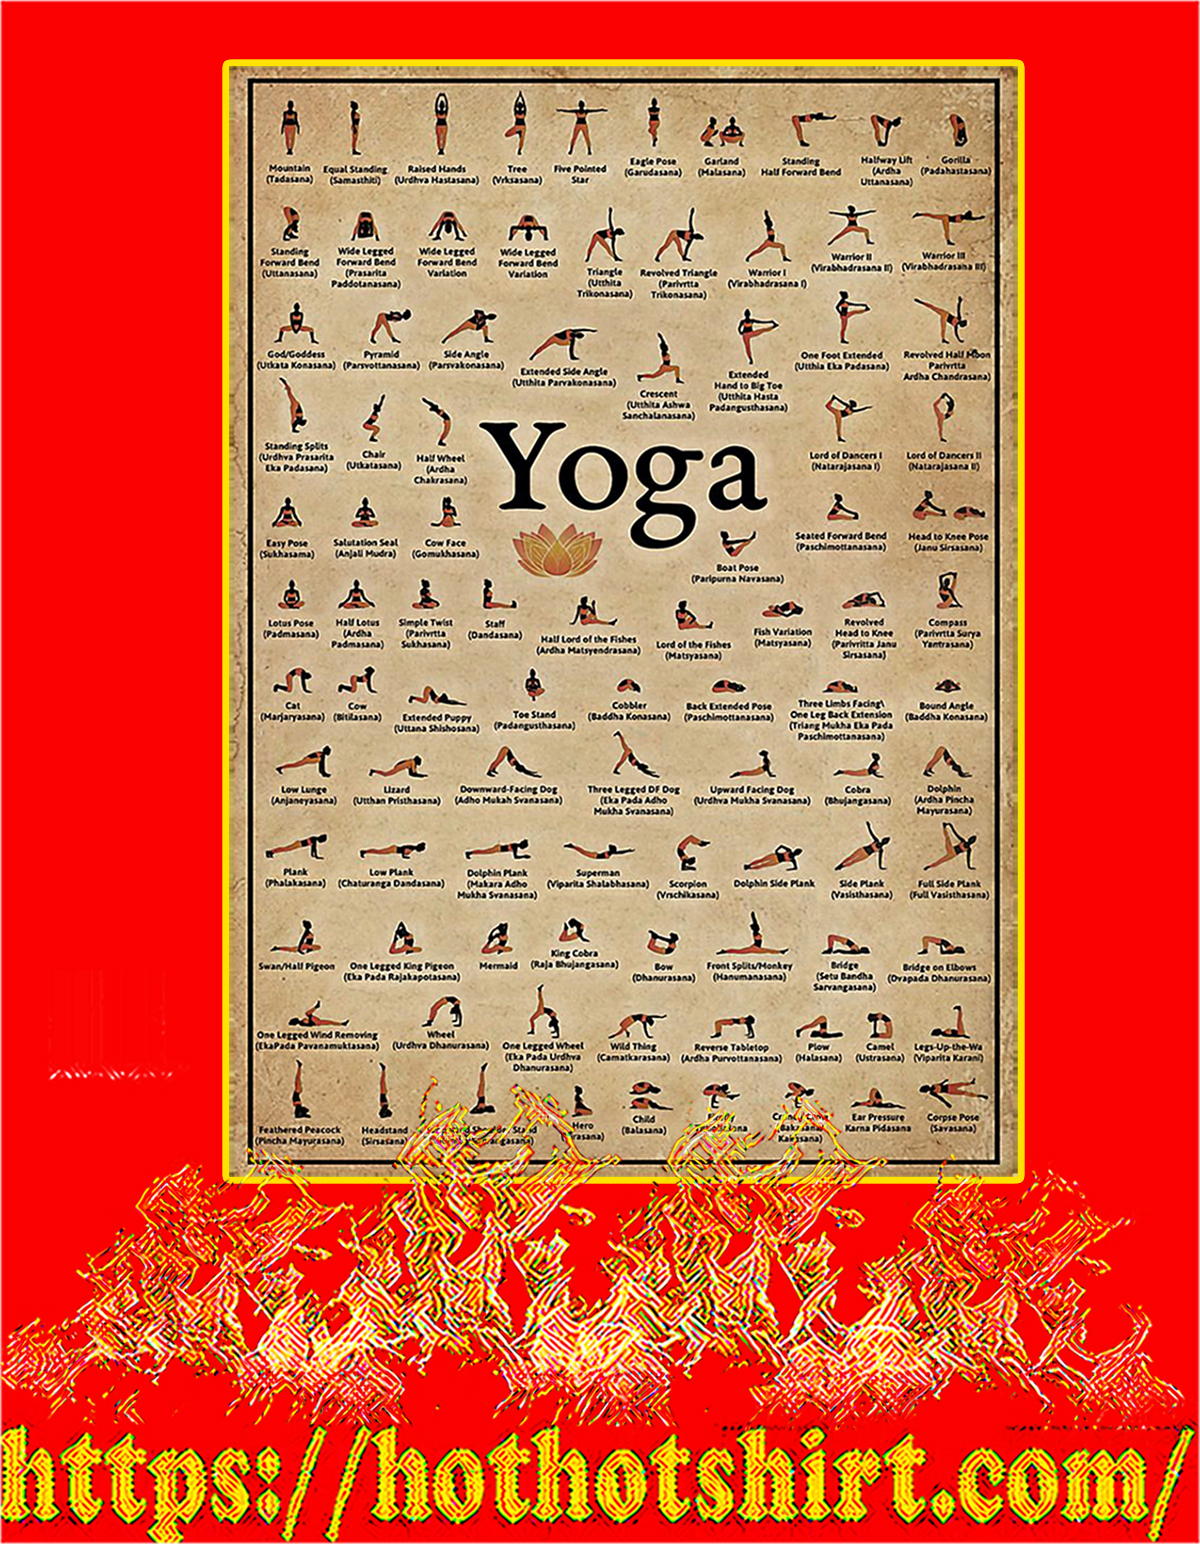 ™ Yoga poses poster